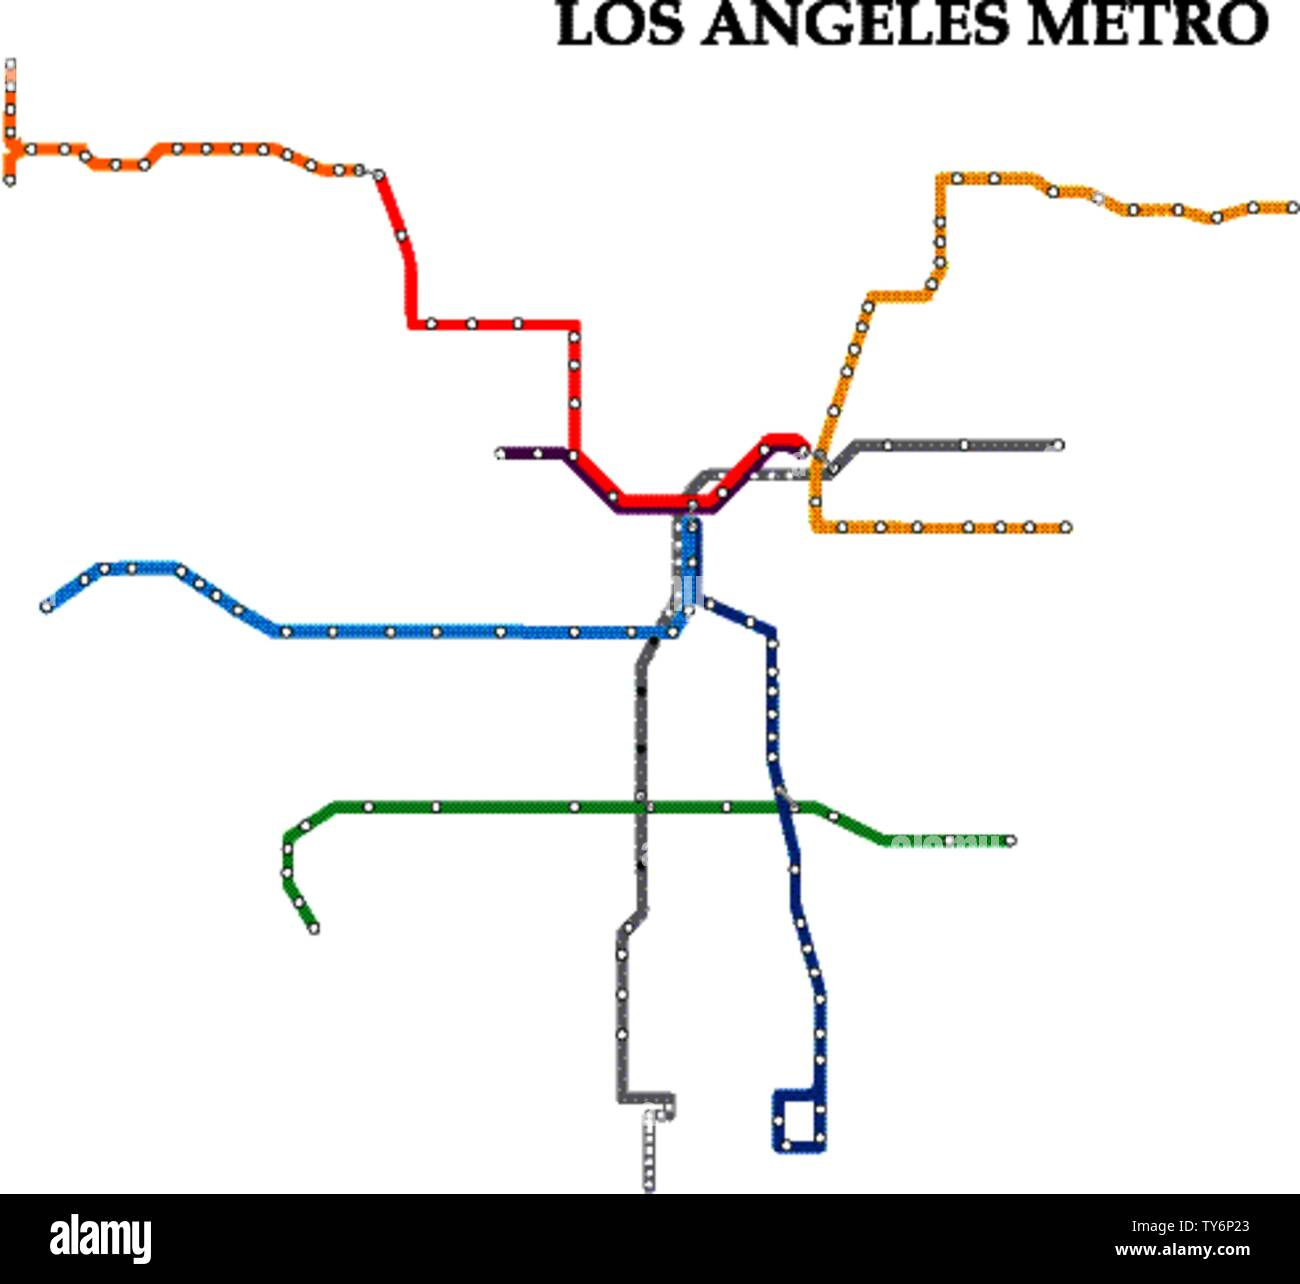 Las Angeles Underground Subway Map.Map Of The Los Angeles Metro Subway Template Of City